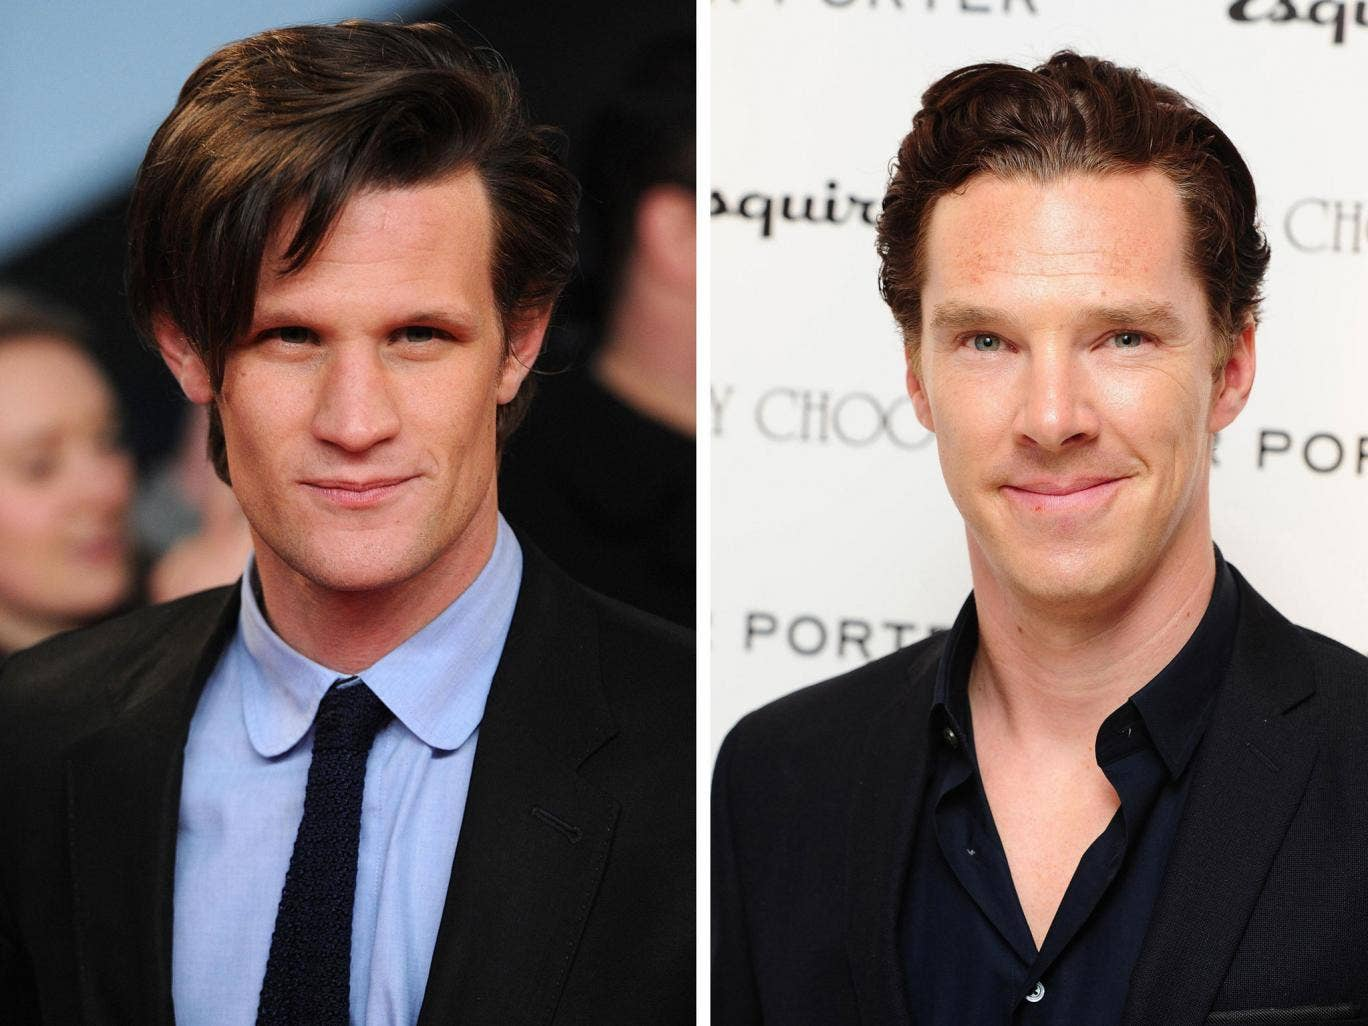 Matt Smith (left) and Benedict Cumberbatch